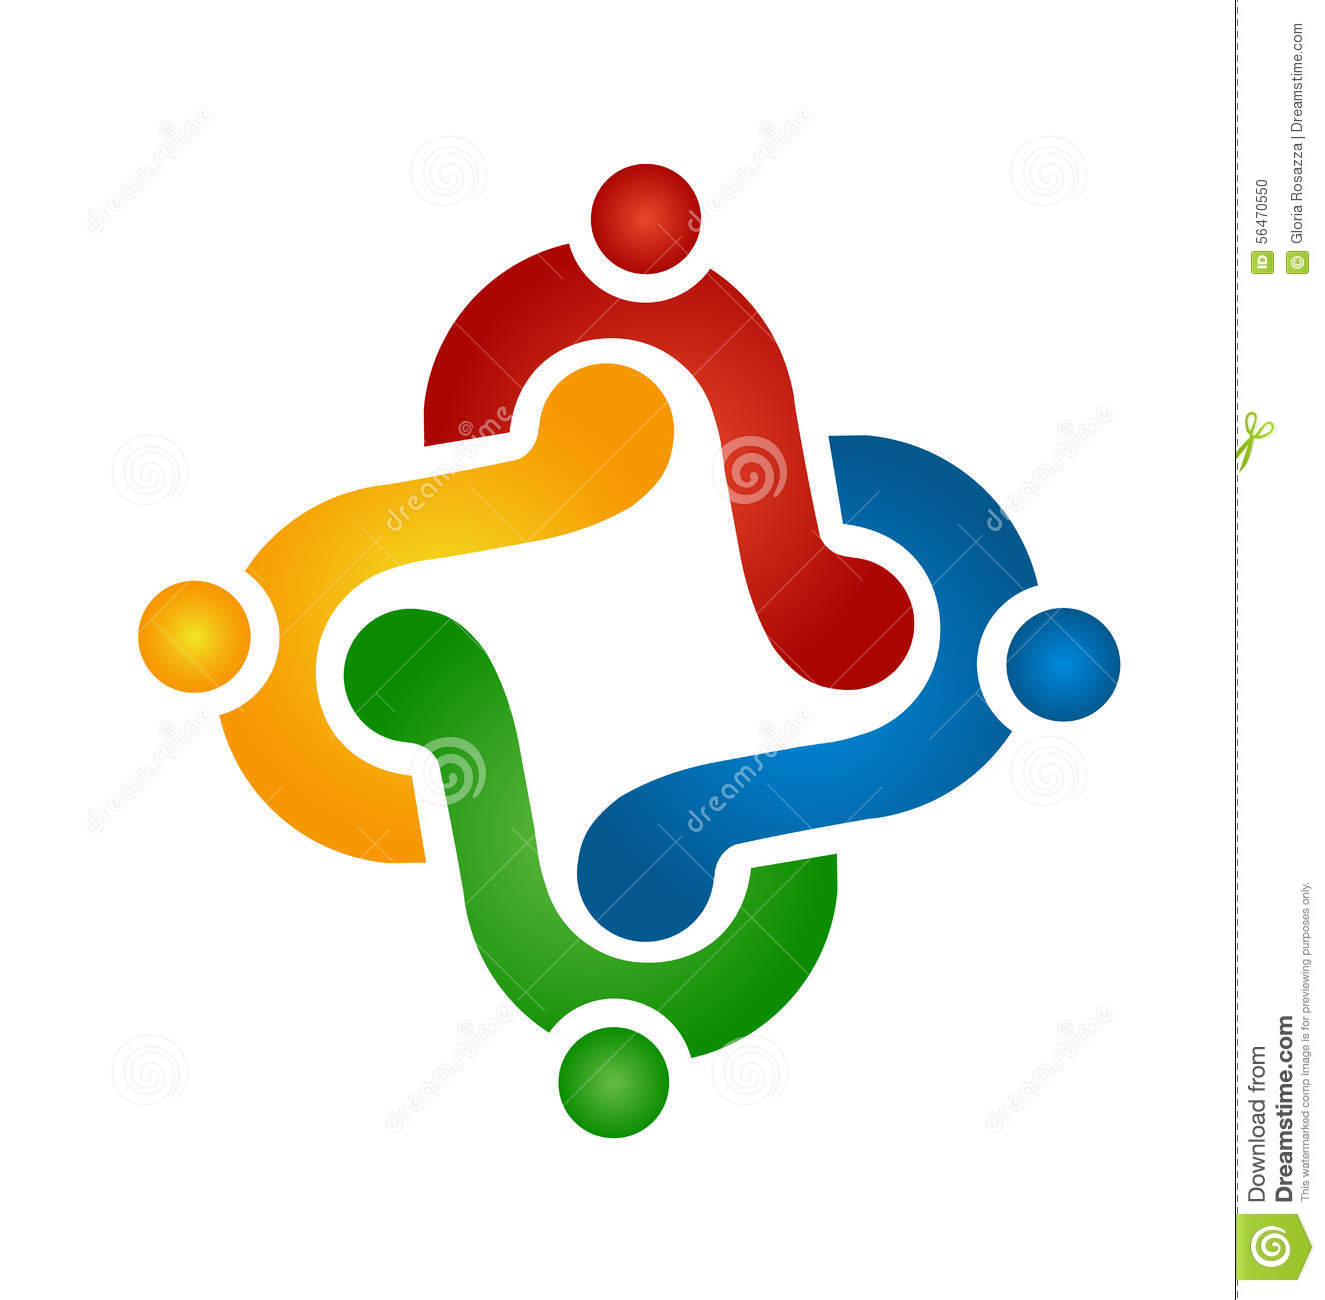 Logo Teamwork Holding Hands Stock Vector - Image: 56470550